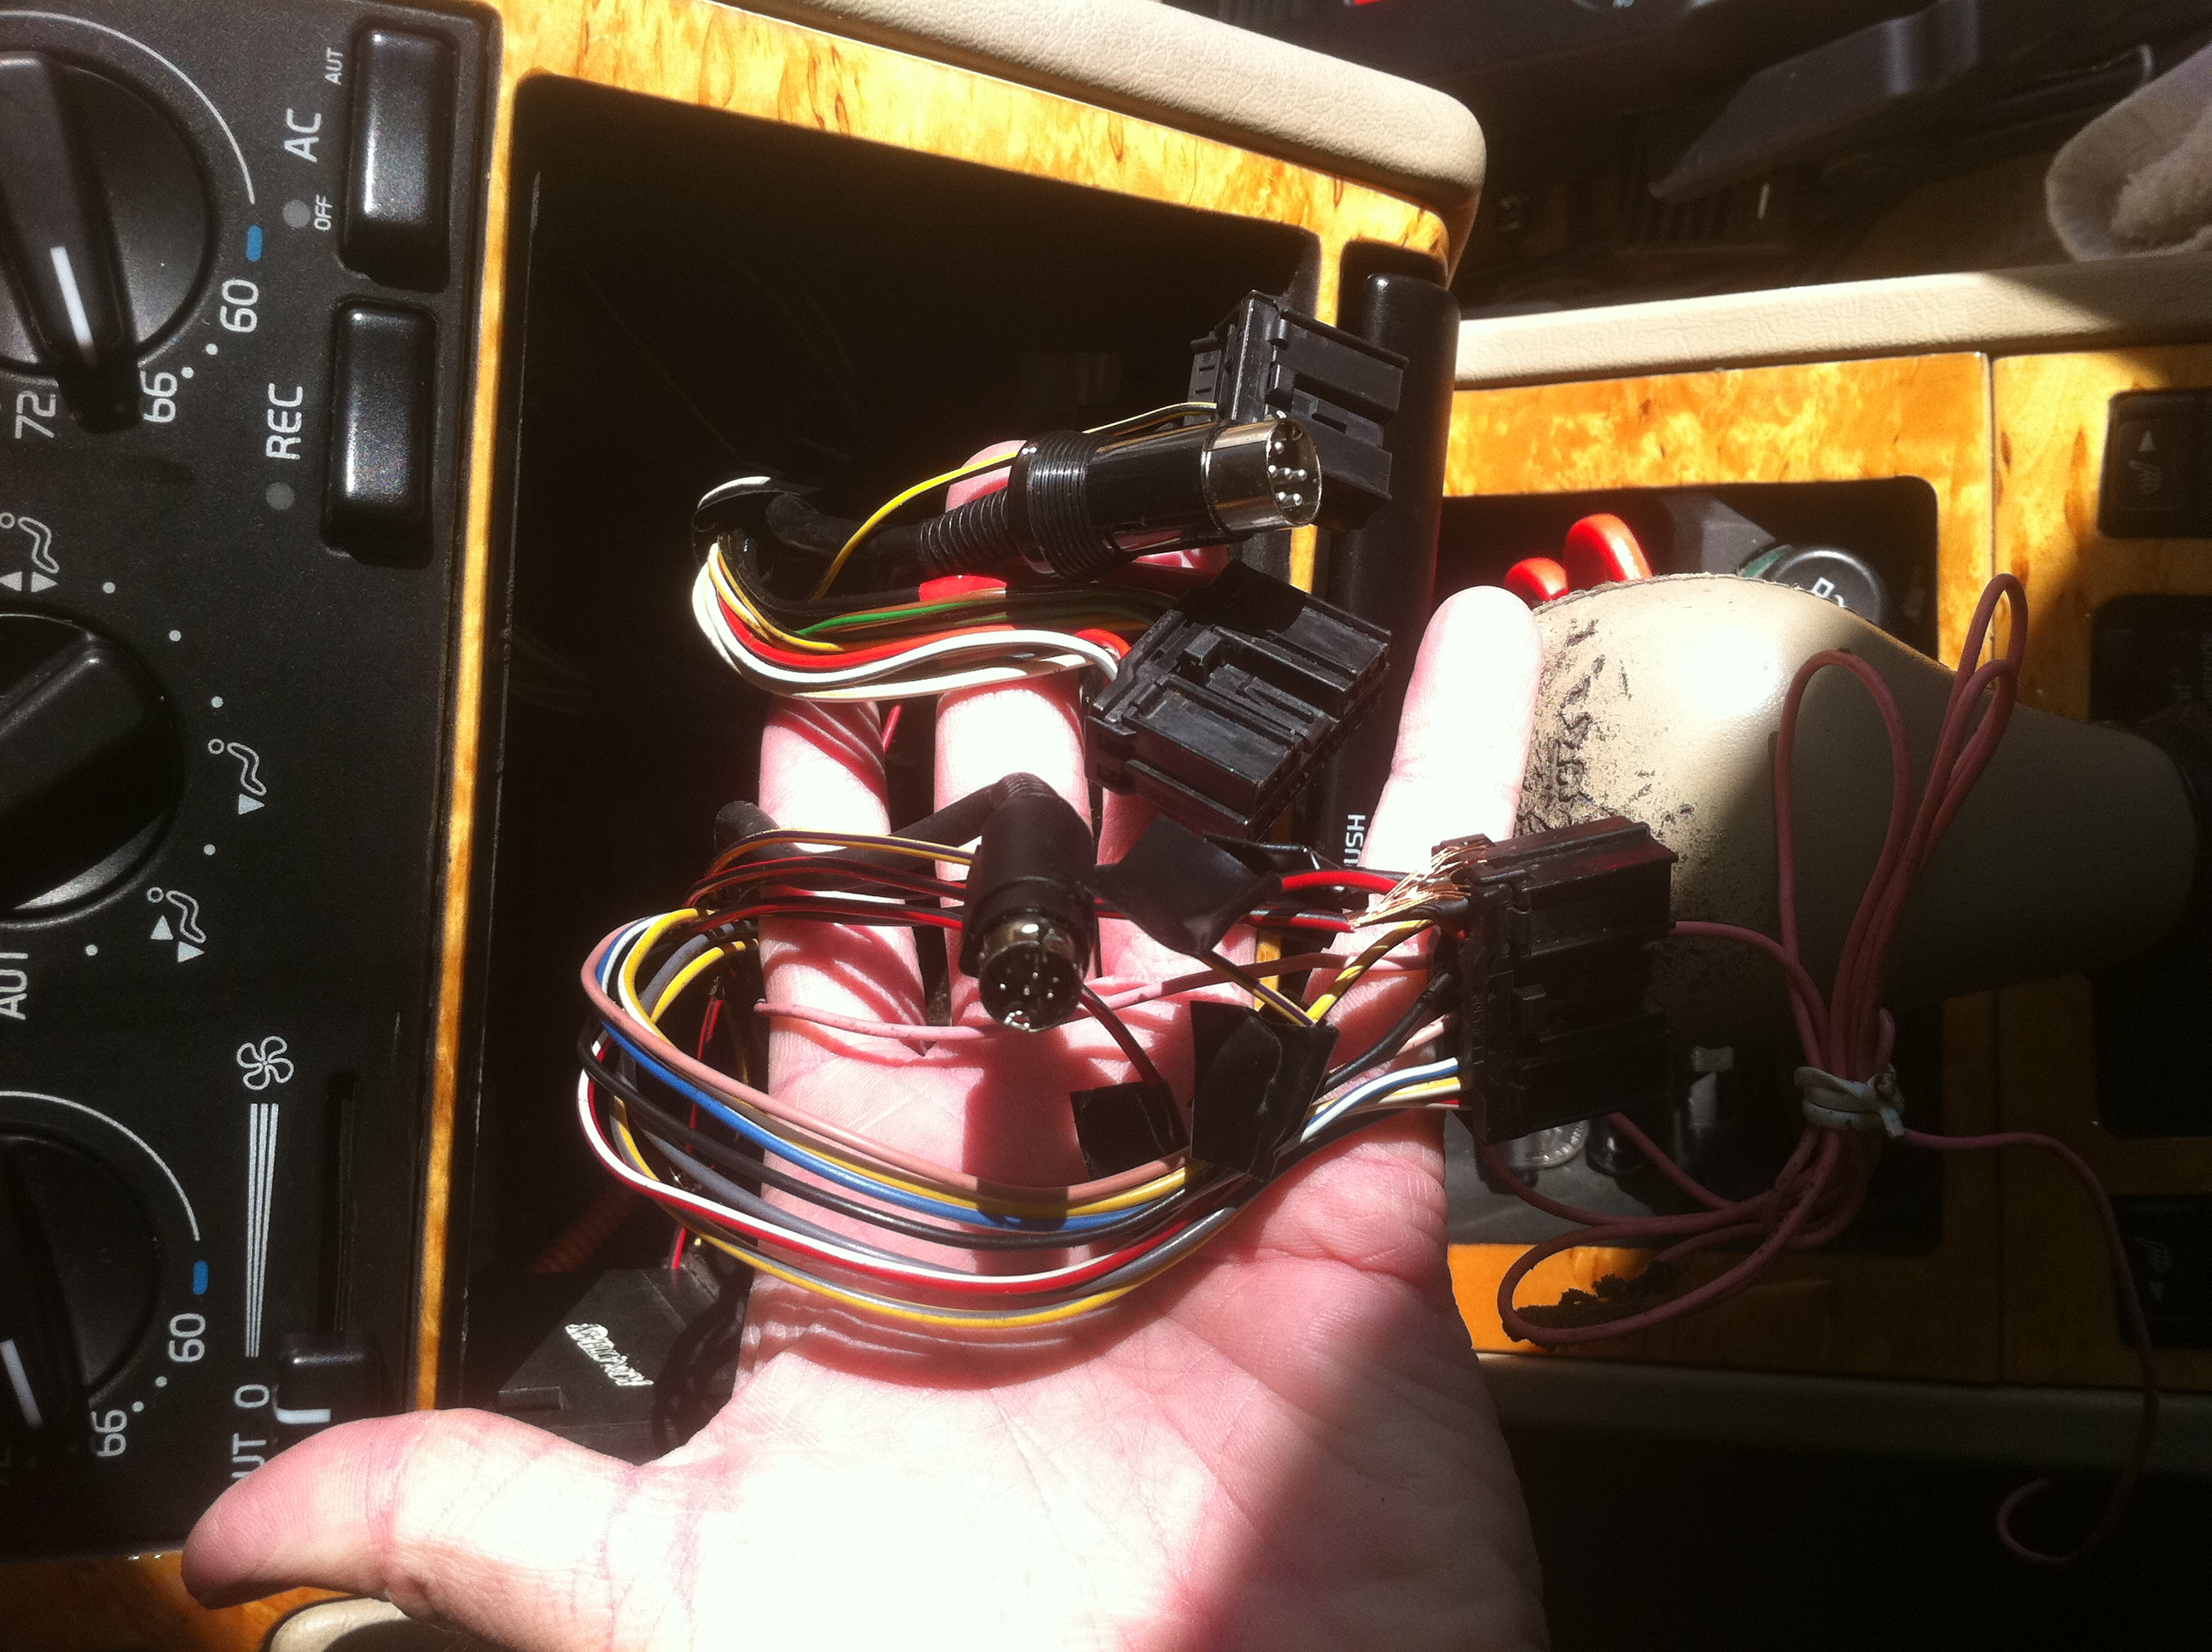 volvo 940 stereo wiring harness volvo image wiring 1997 850 r radio wires are a hot mess on volvo 940 stereo wiring harness